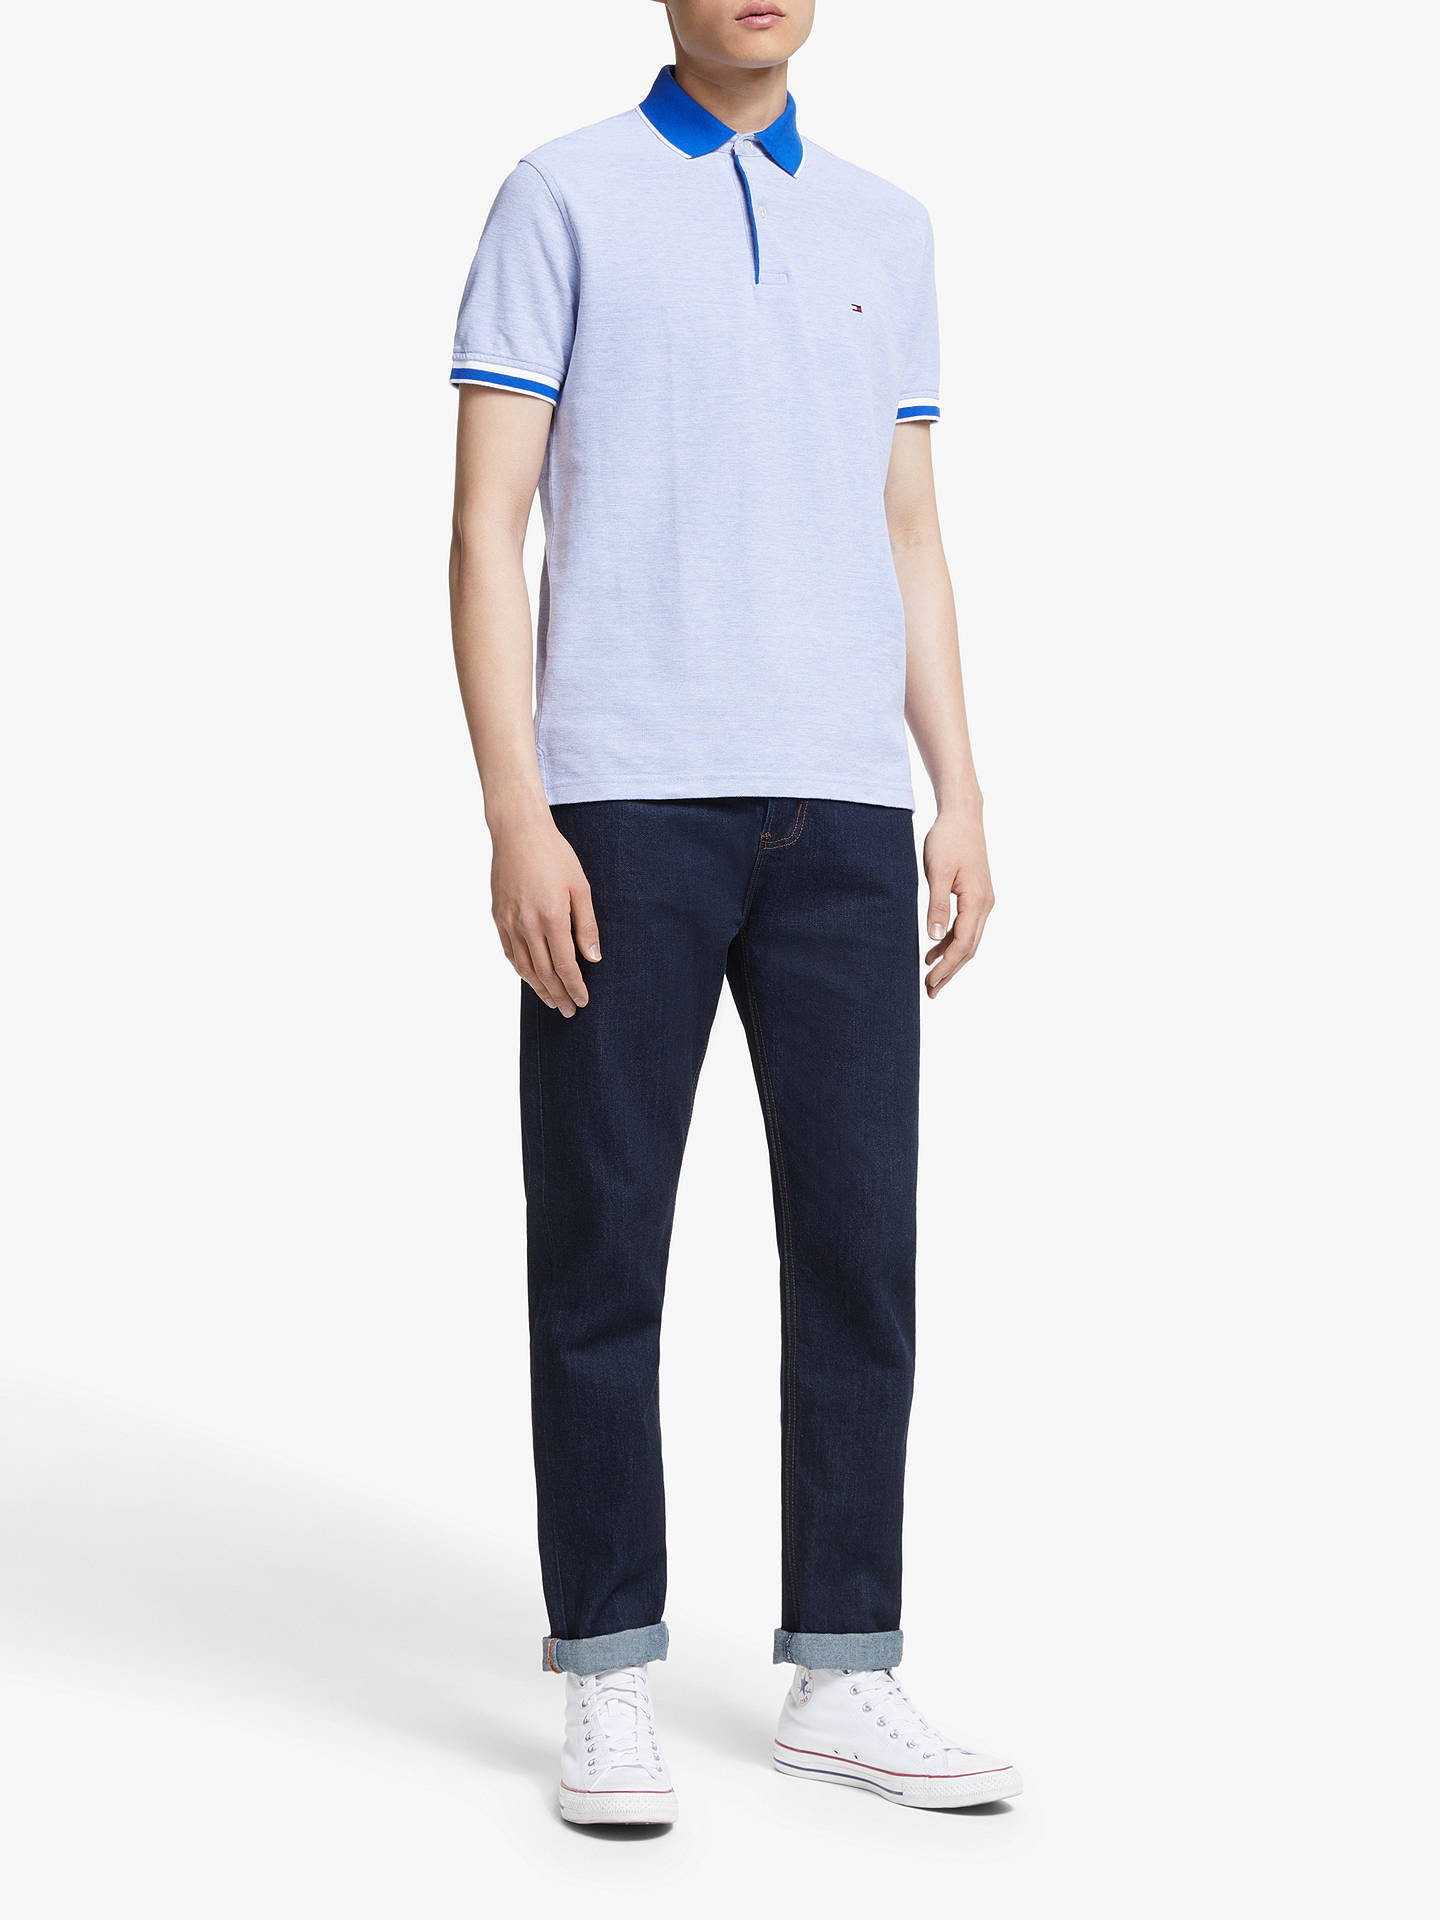 Tommy Hilfiger Slim Fit Oxford Polo Shirt, Surf The Web at